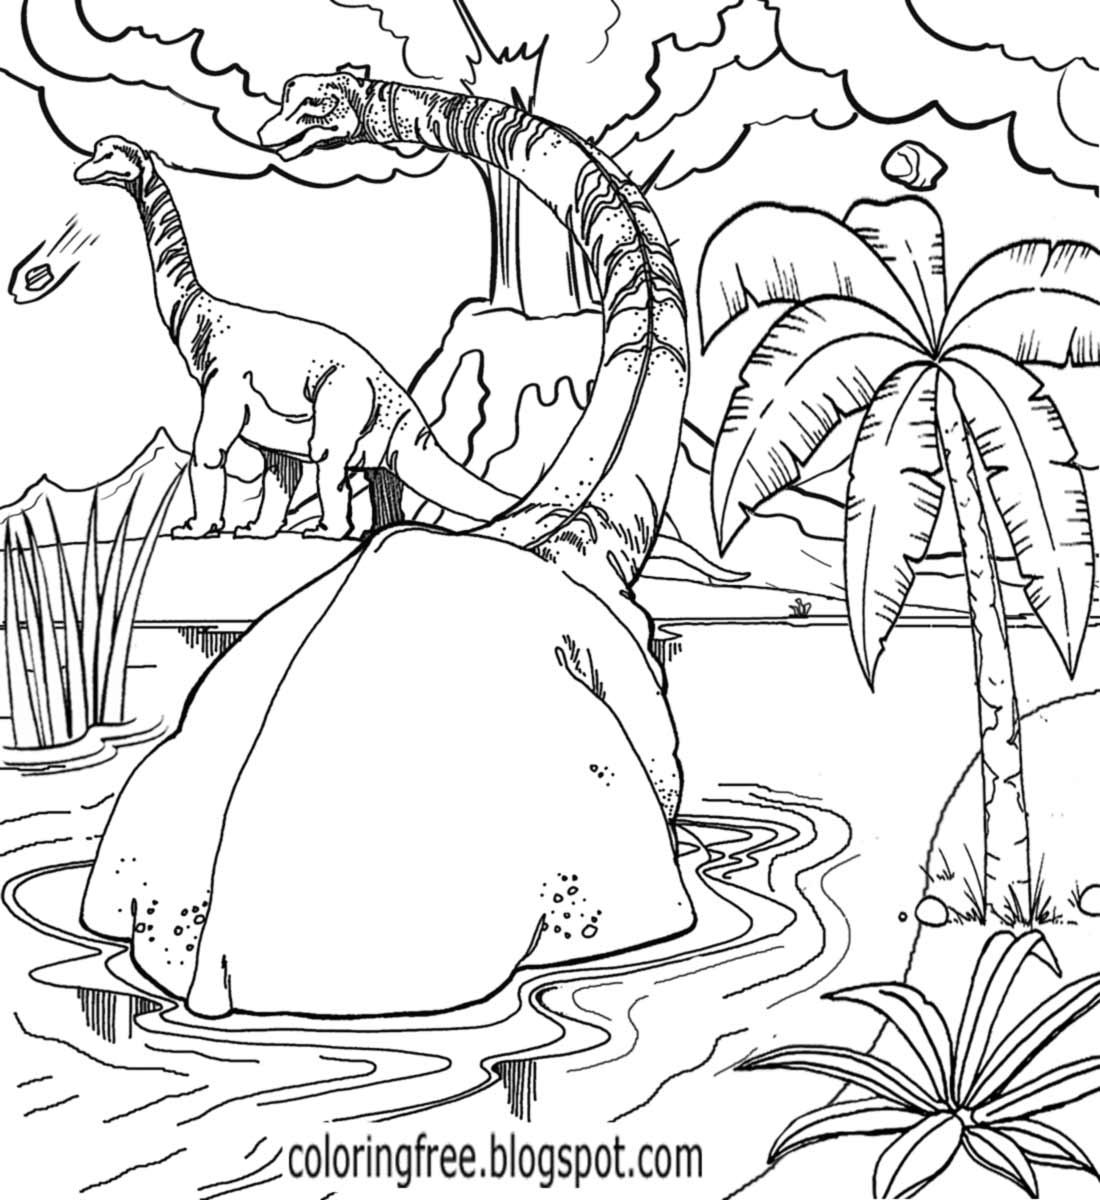 1100x1200 Free Coloring Pages Printable Pictures To Color Kids Drawing Ideas